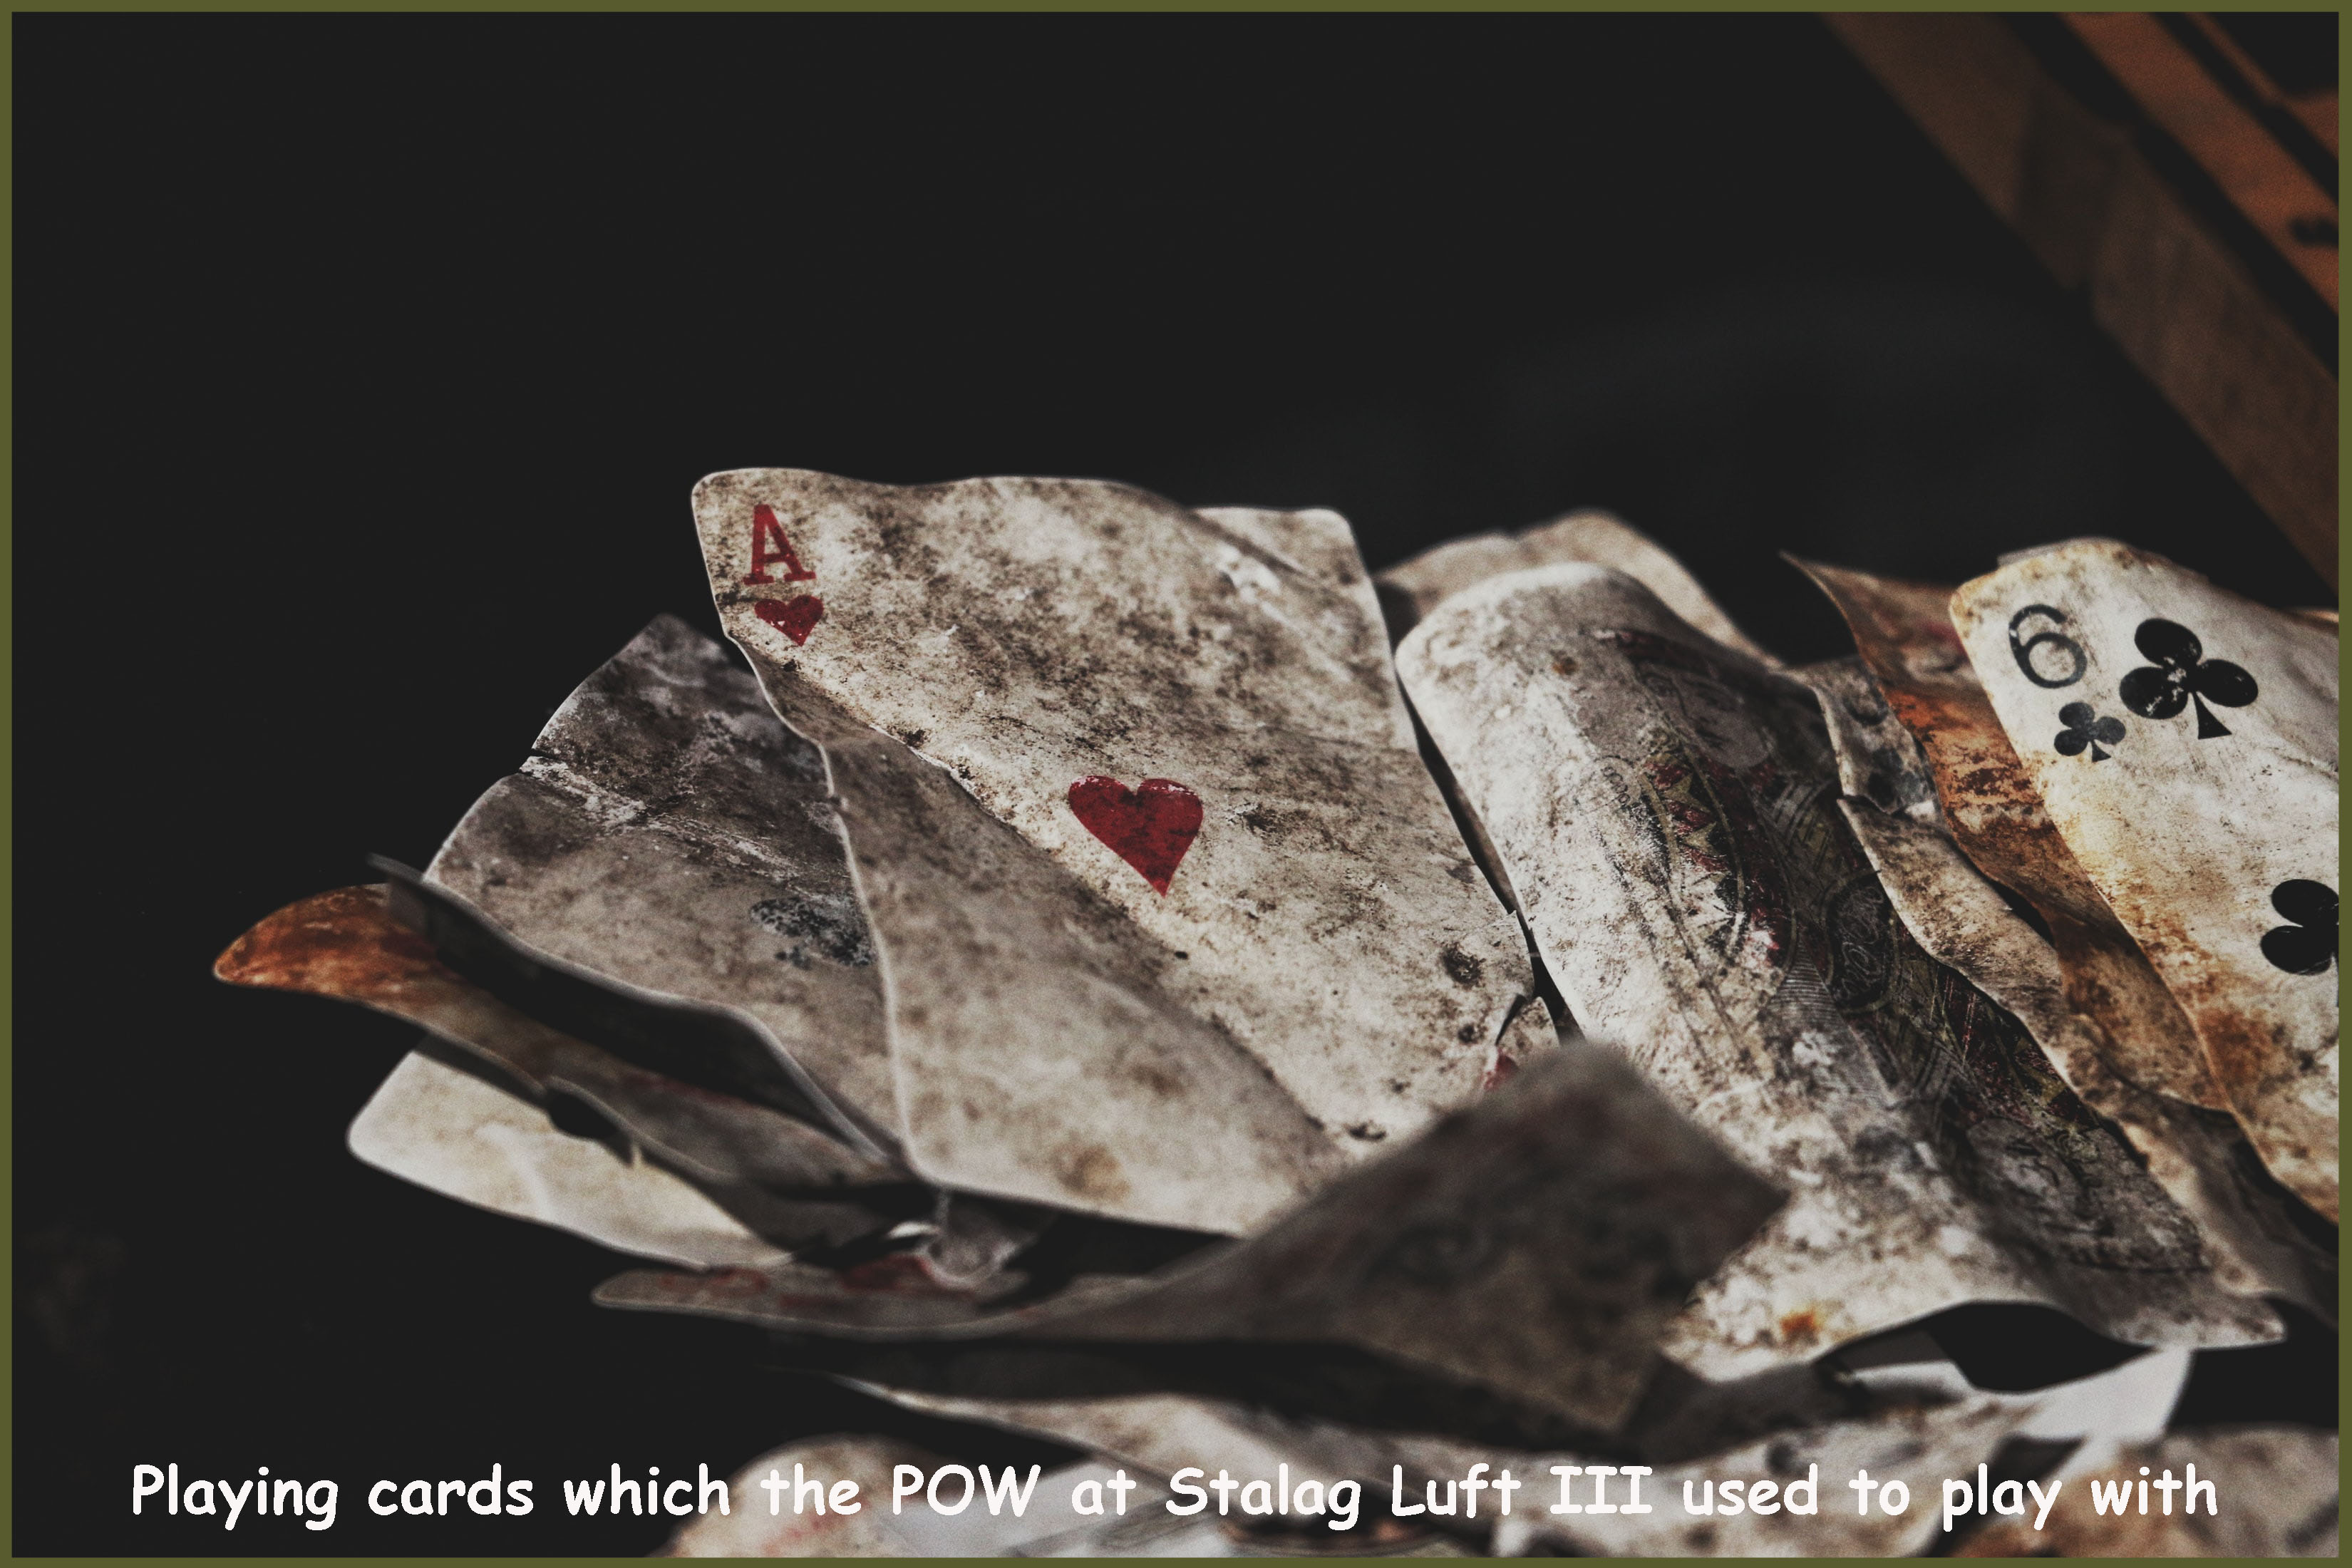 These were the card which the soldiers held captive in Stalag Luft III in Zagan, Poland played with